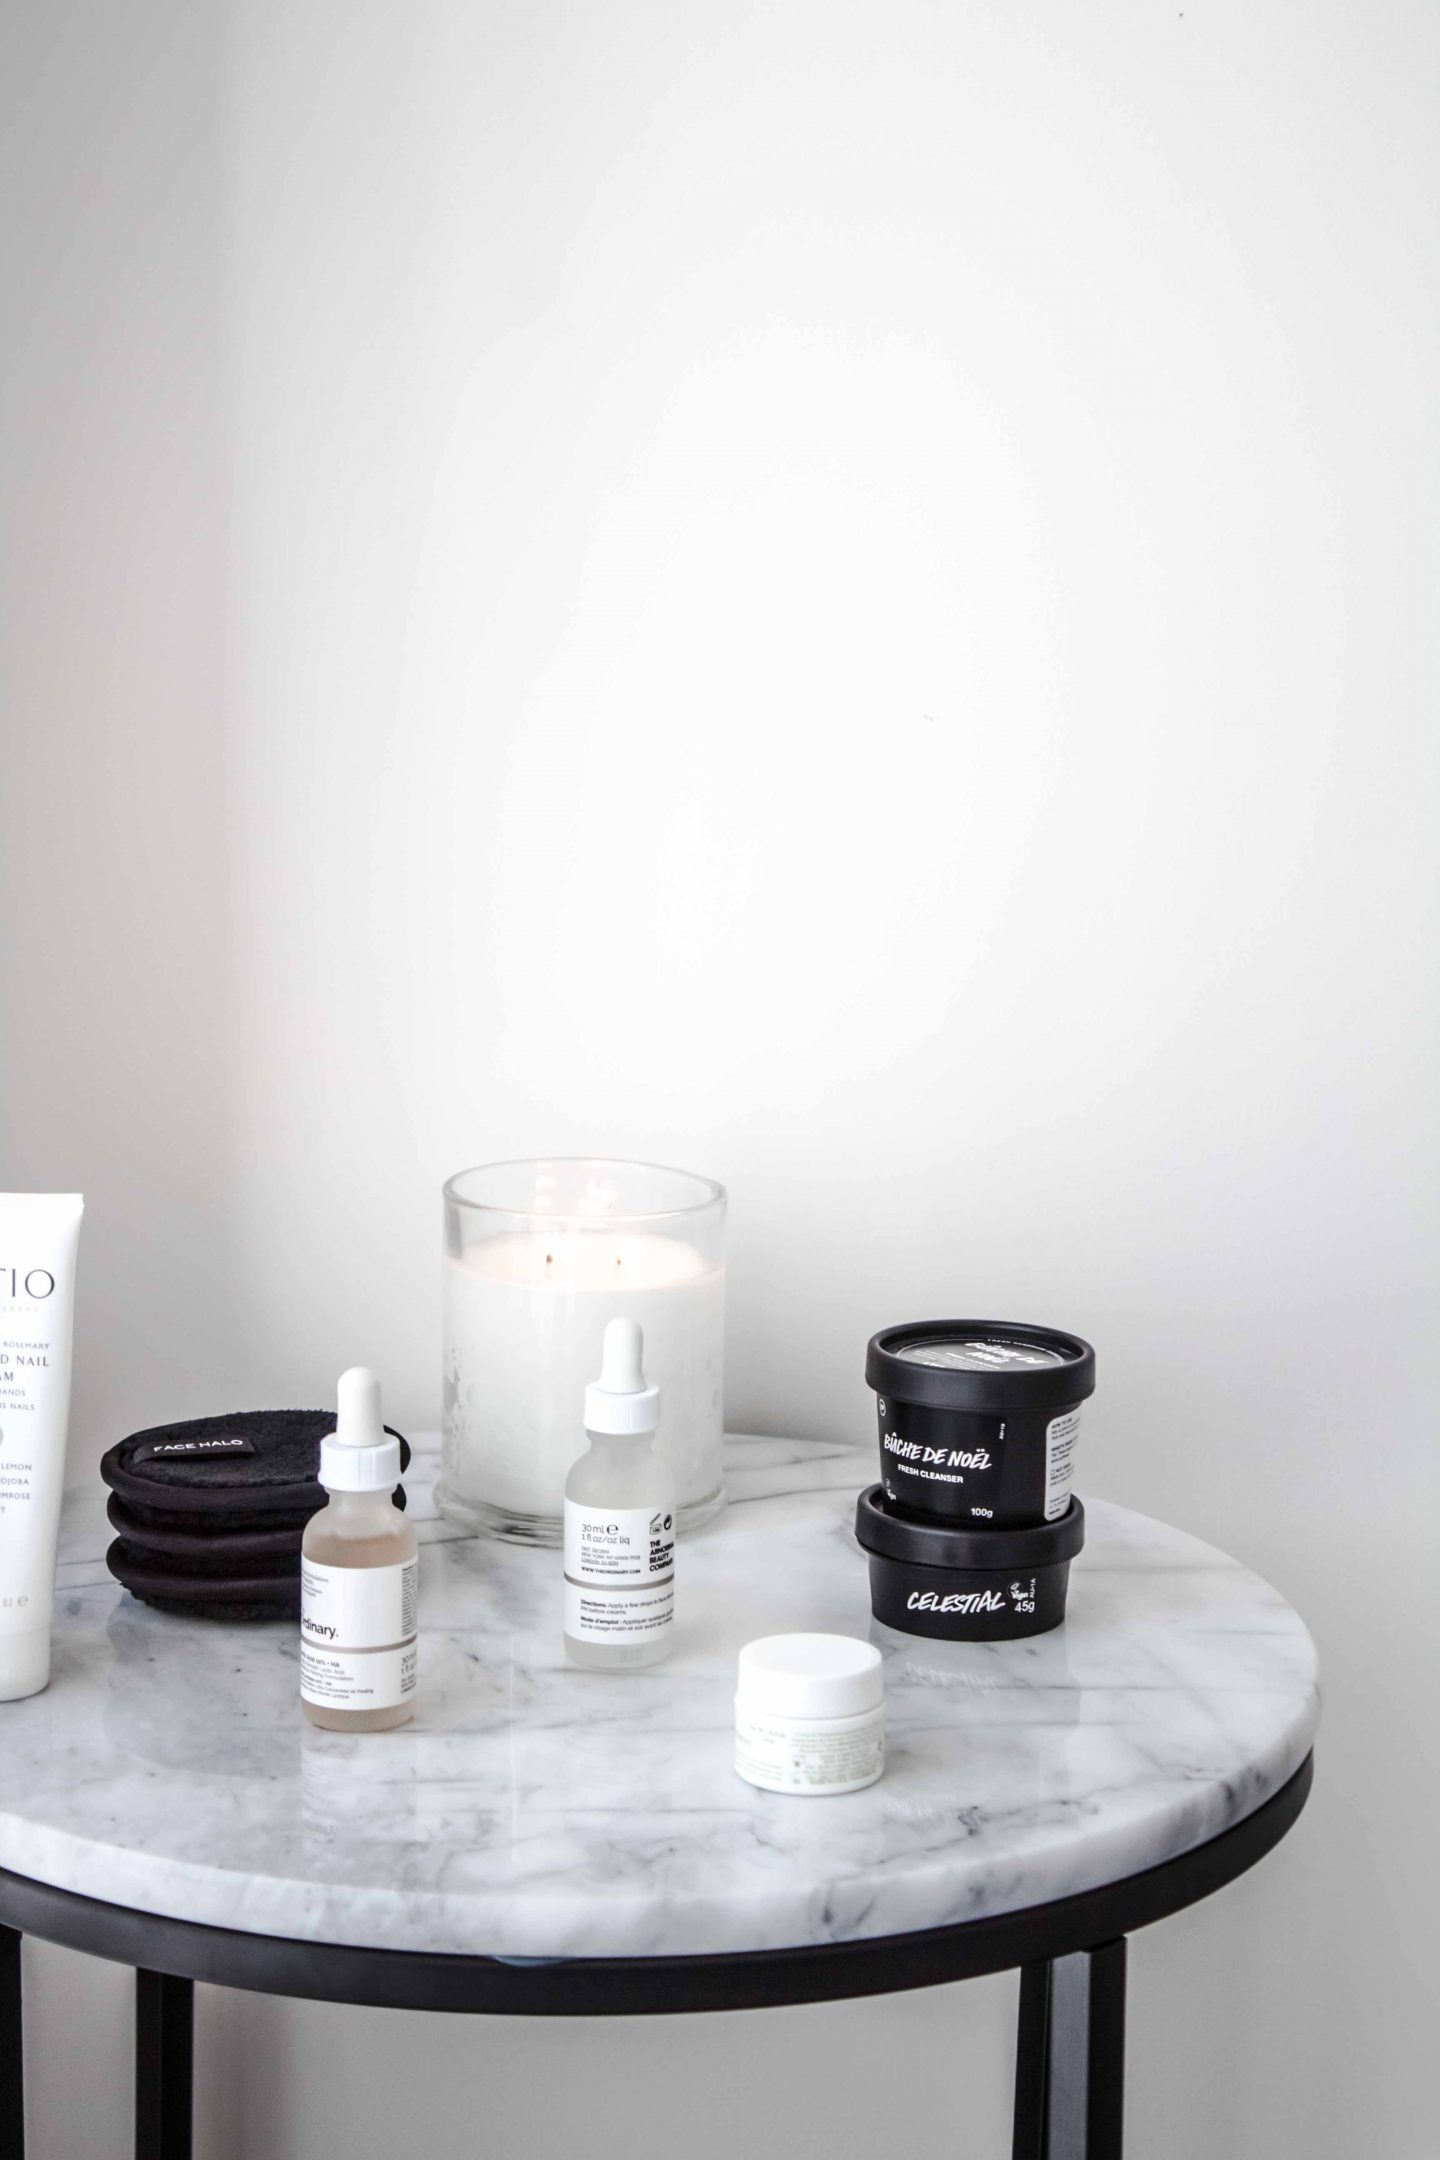 Skincare products on trial